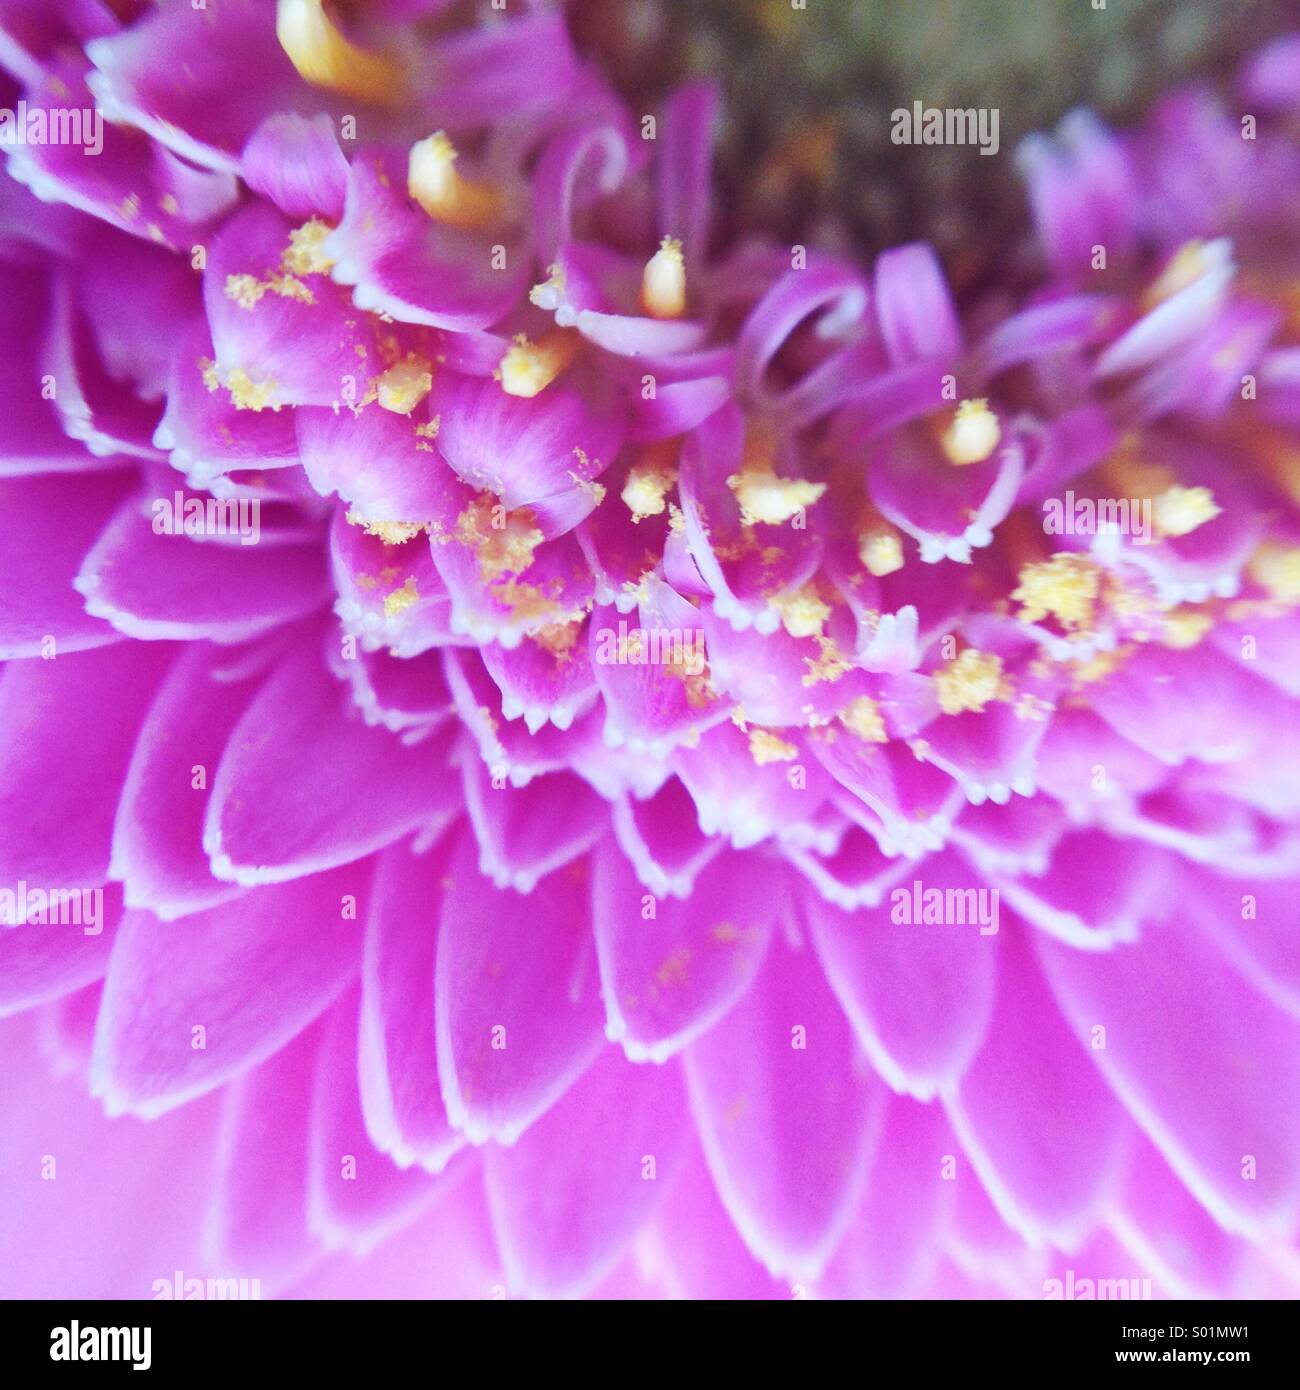 Radiant orchid - Stock Image